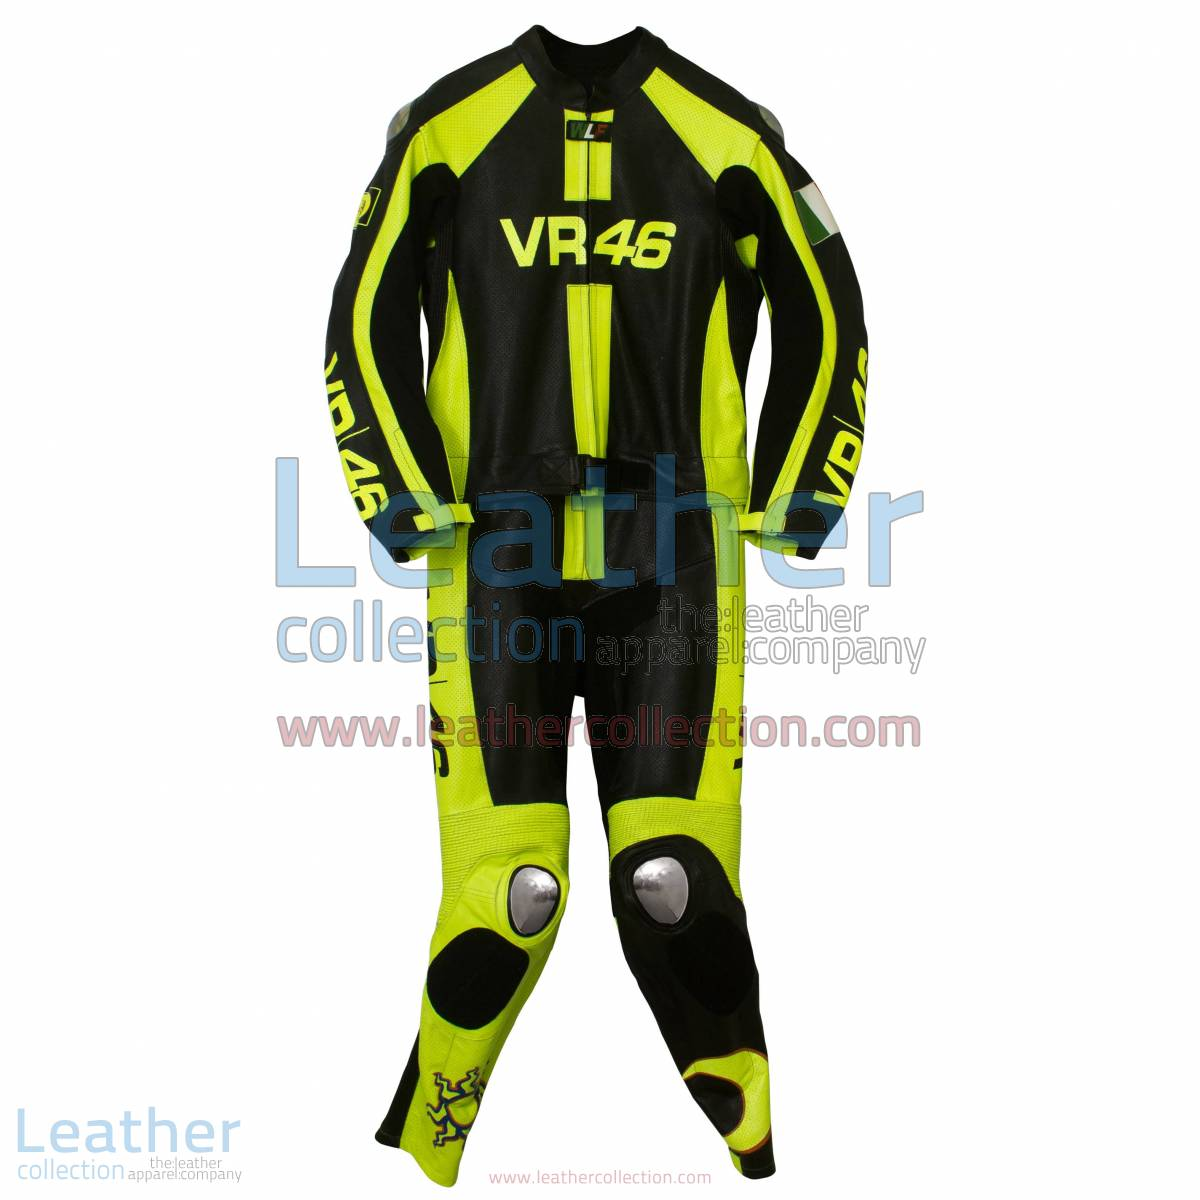 VR46 Valentino Rossi Motorcycle Race Suit | valentino rossi suit